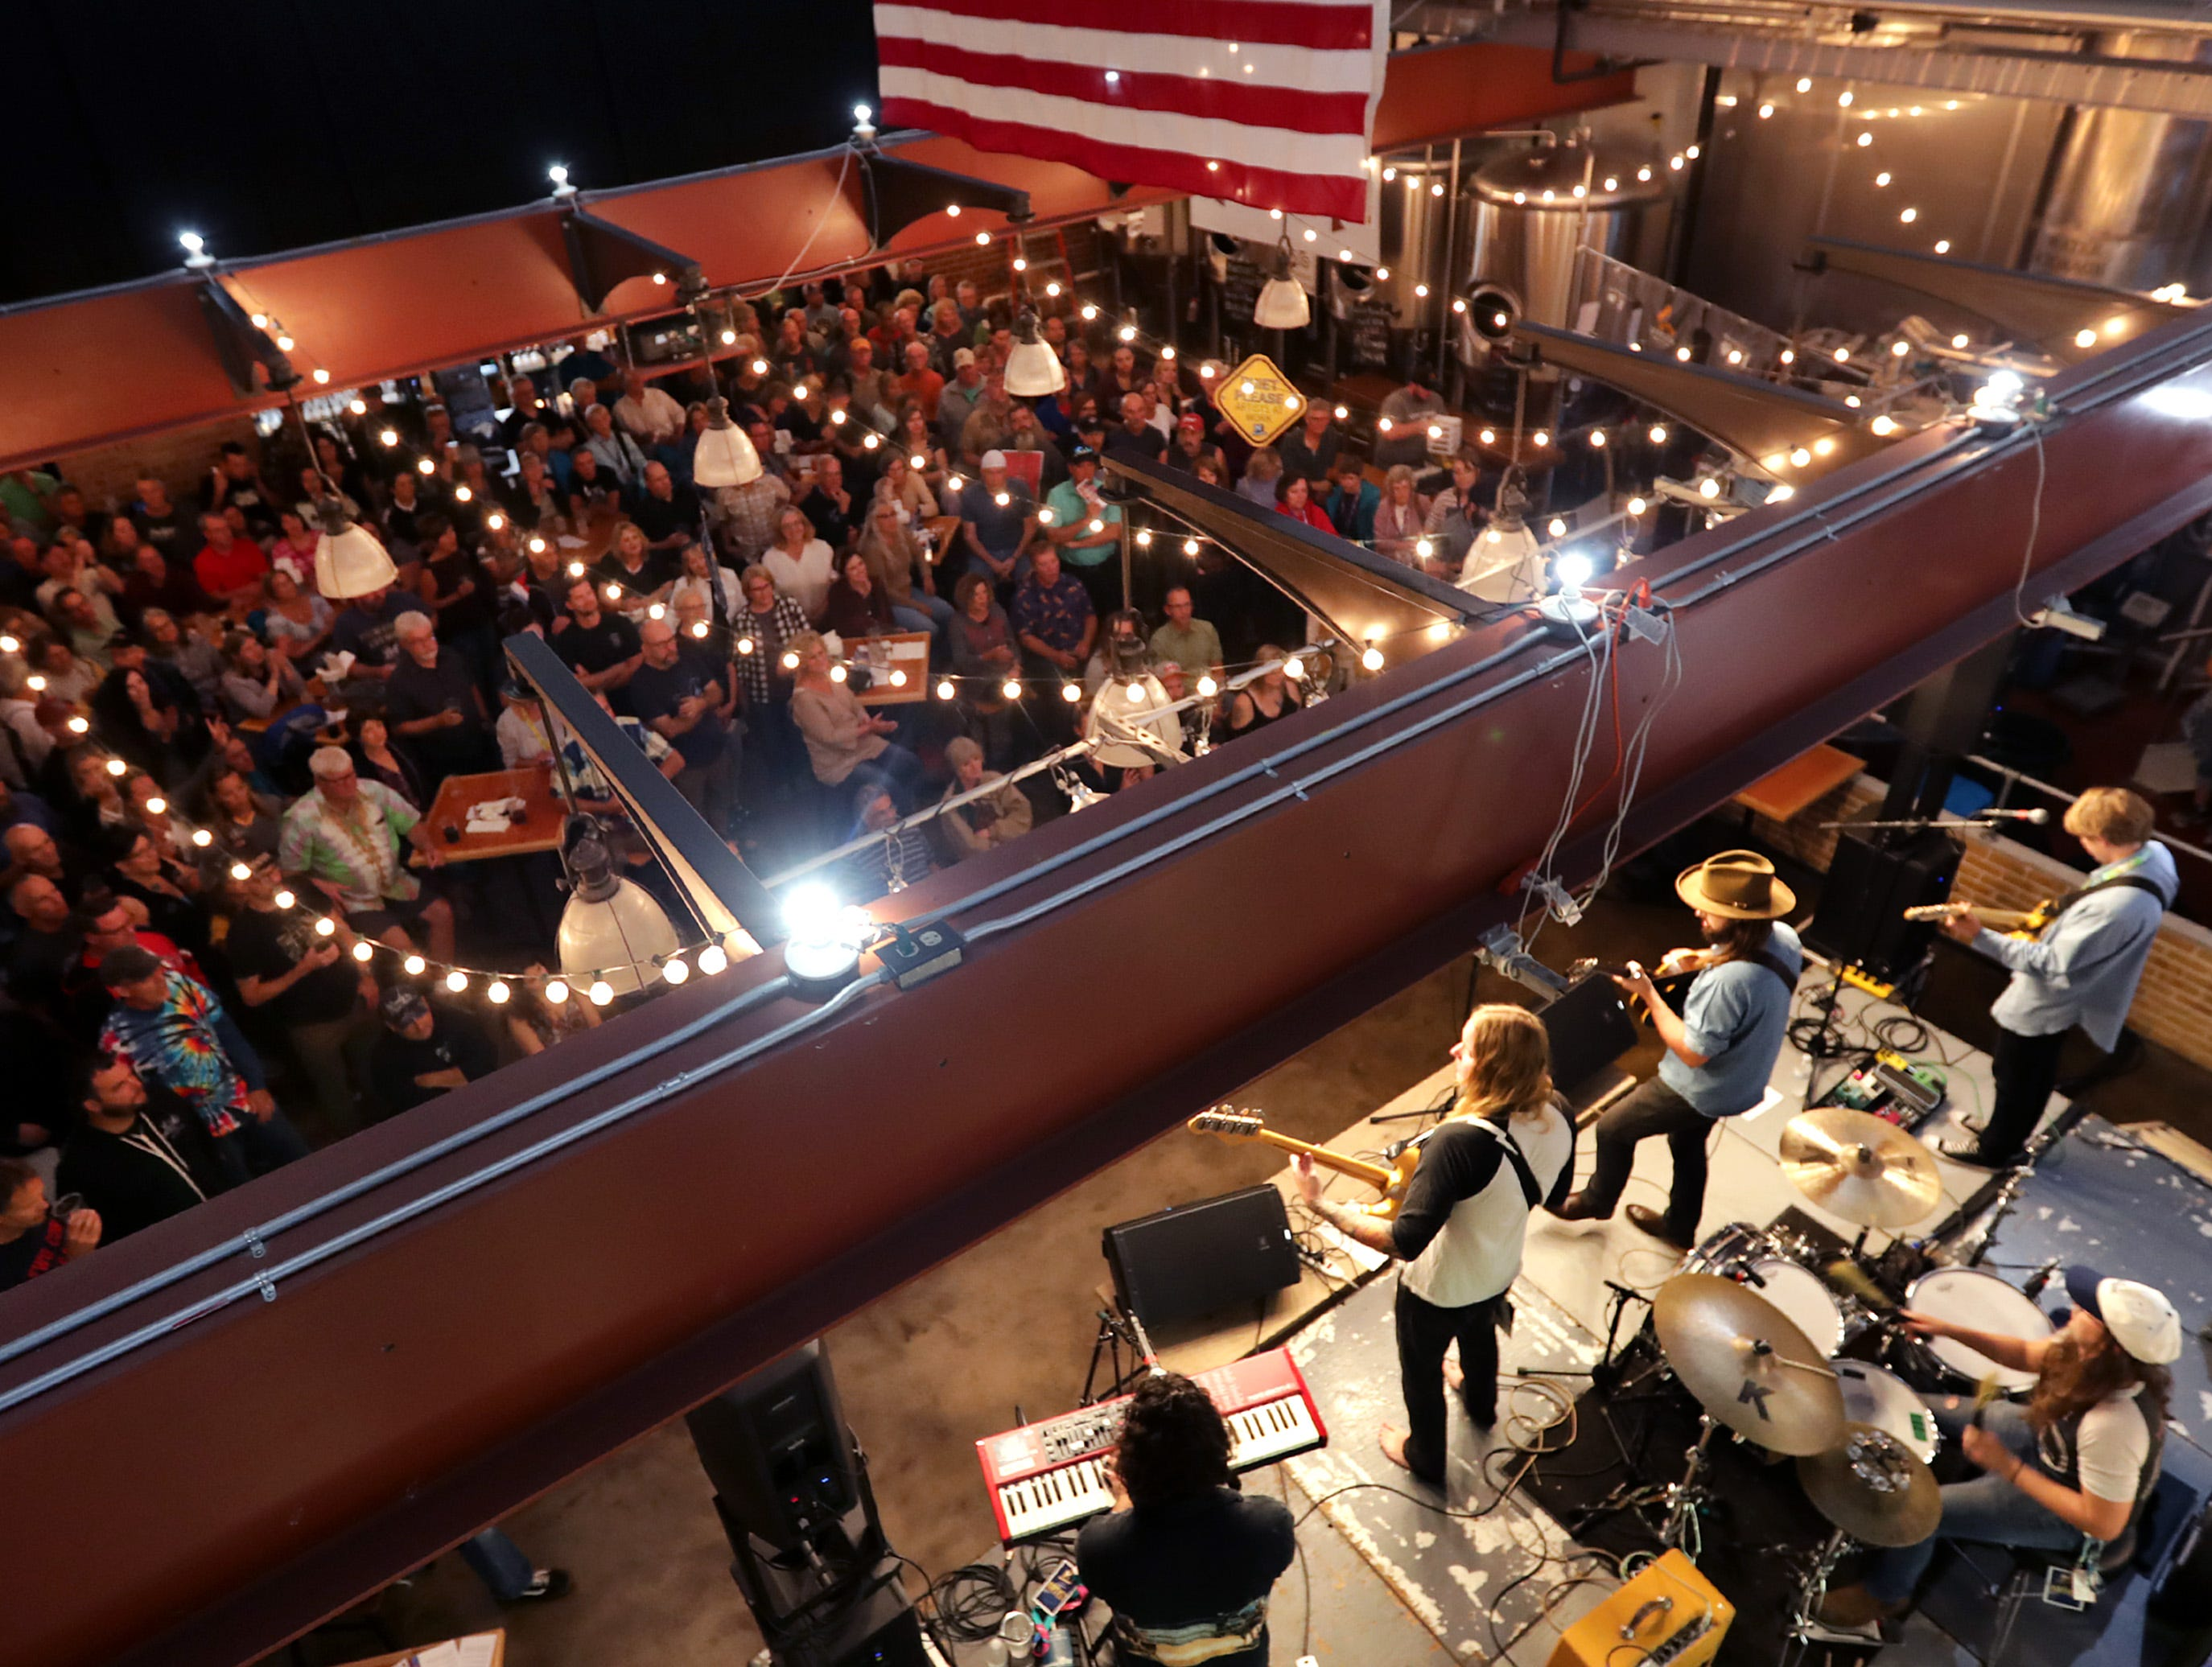 Caleb Caudle, performs in front of a packed house at the Appleton Beer Factory during the Mile of Music festival Thursday, August 2, 2018, in Appleton, Wis. Wm. Glasheen/USA TODAY NETWORK-Wisconsin